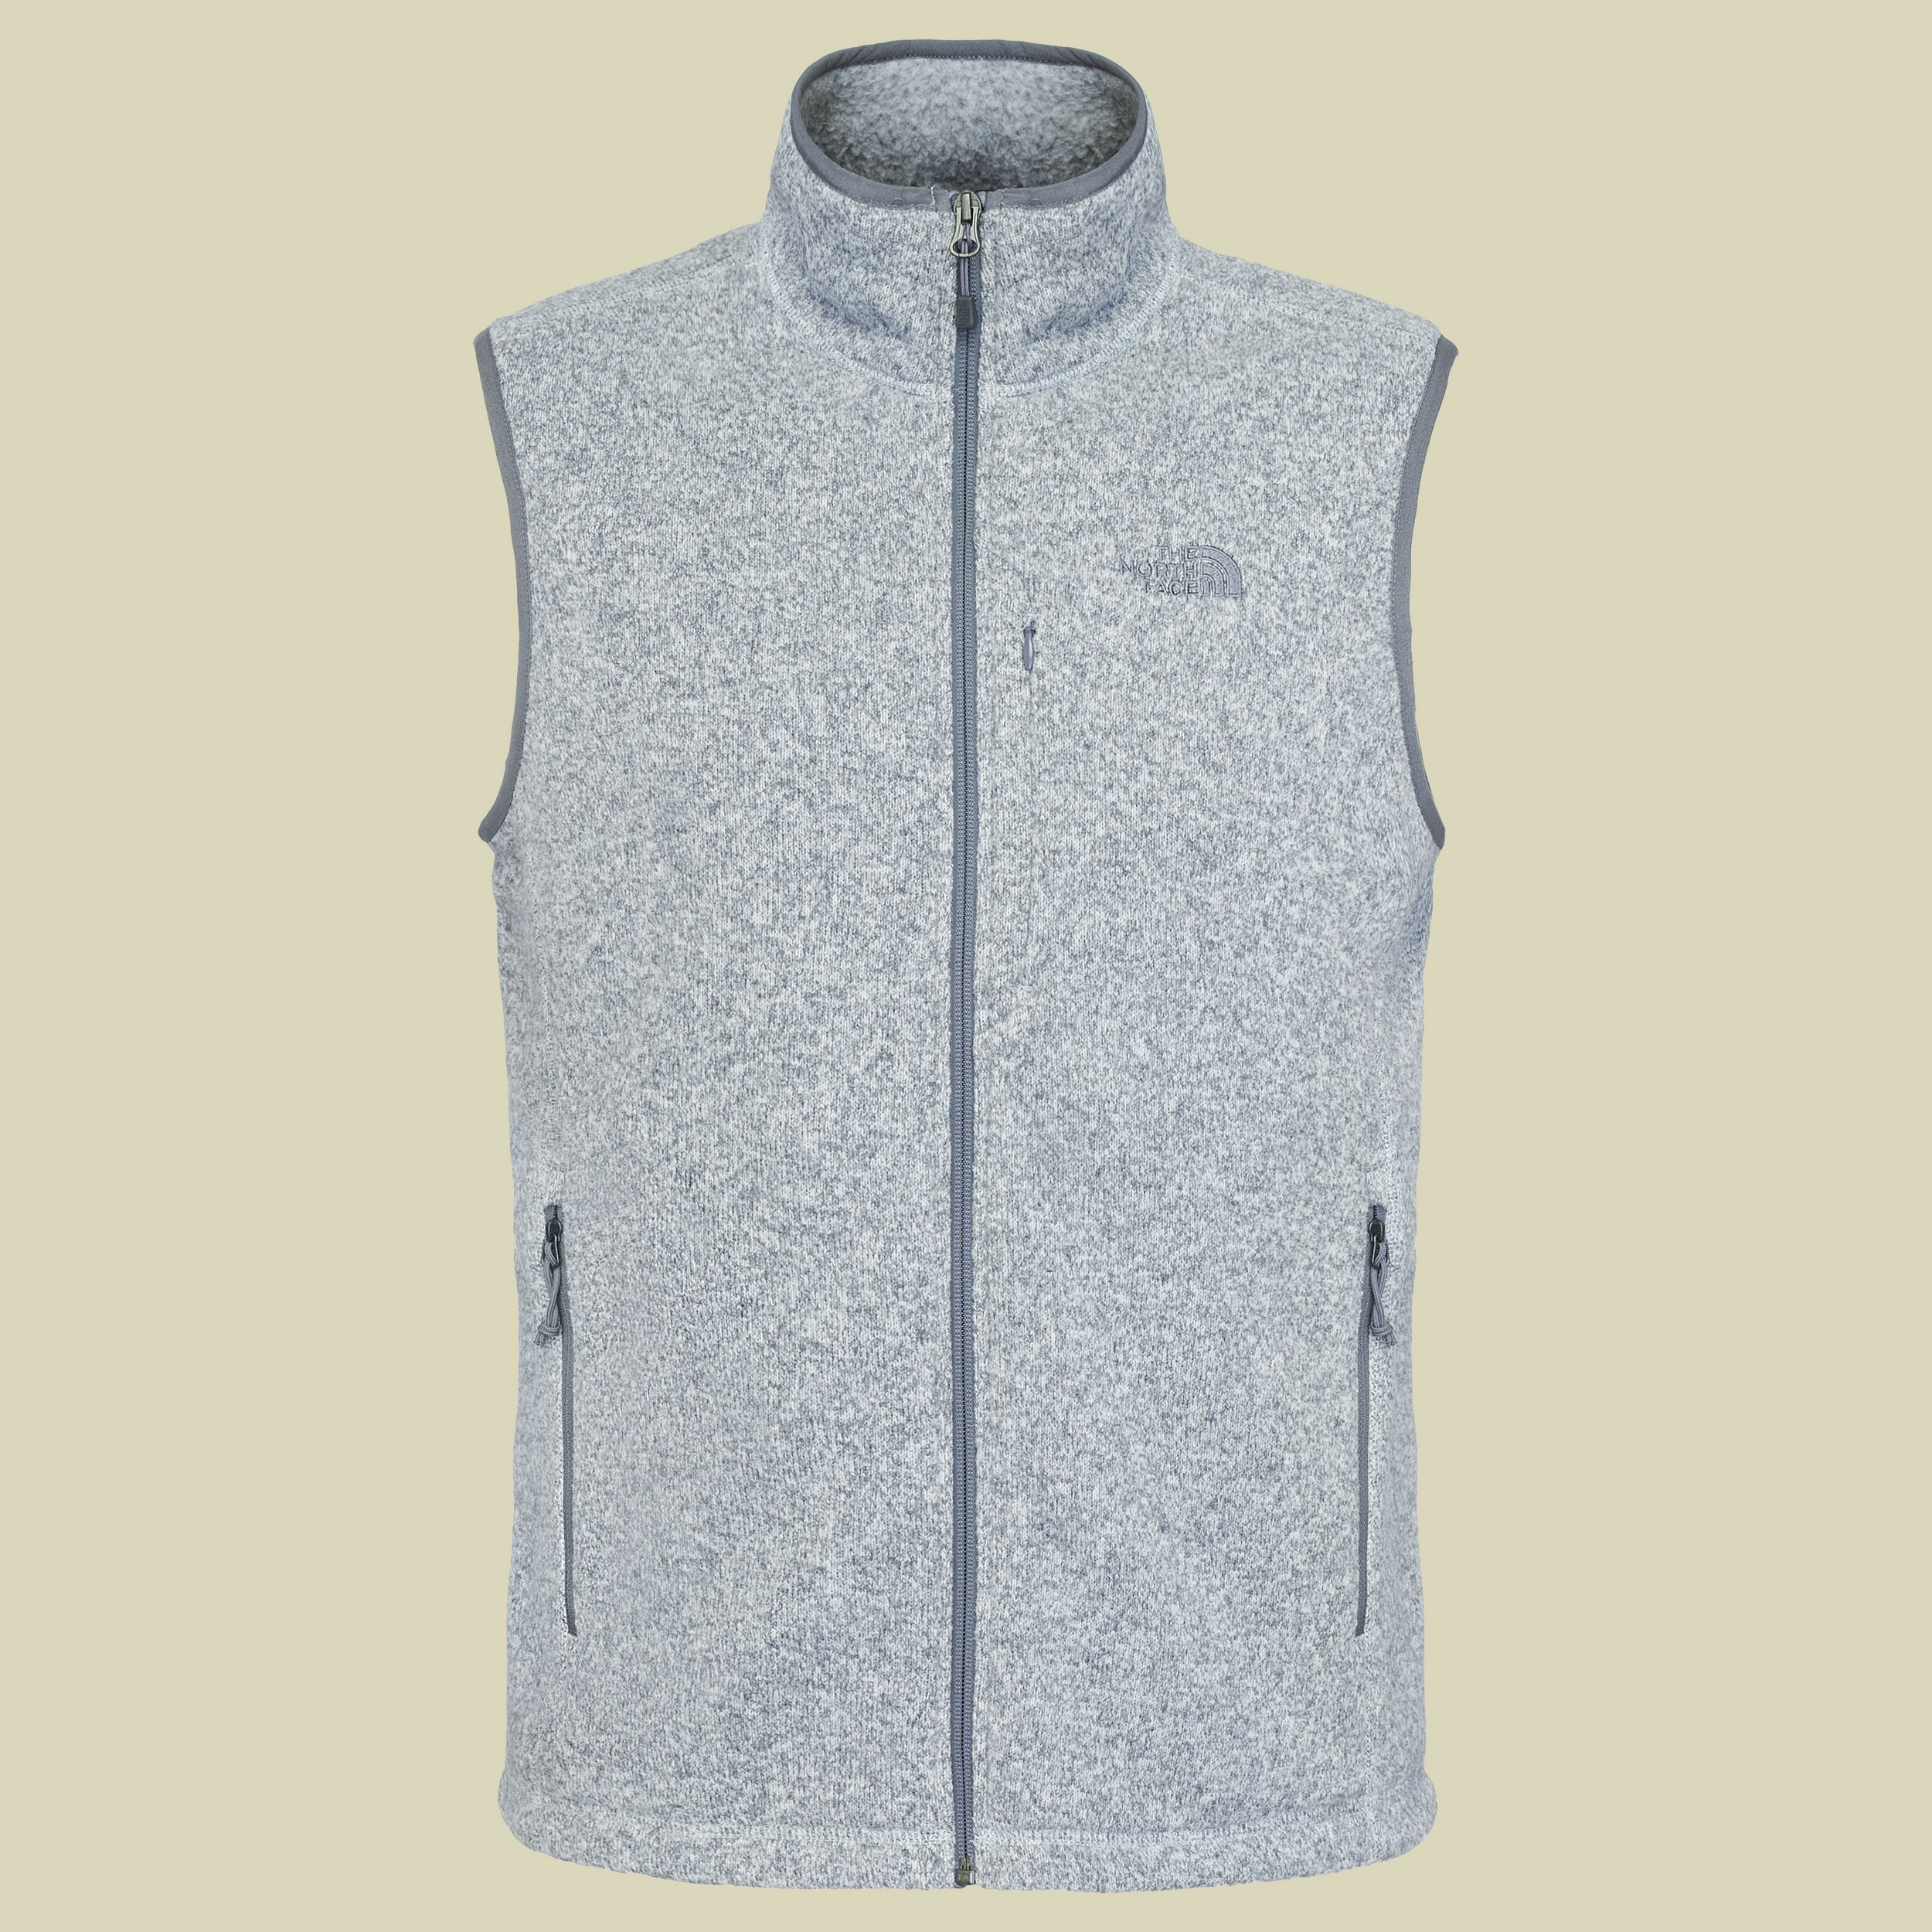 Gordon Lyons Vest Men